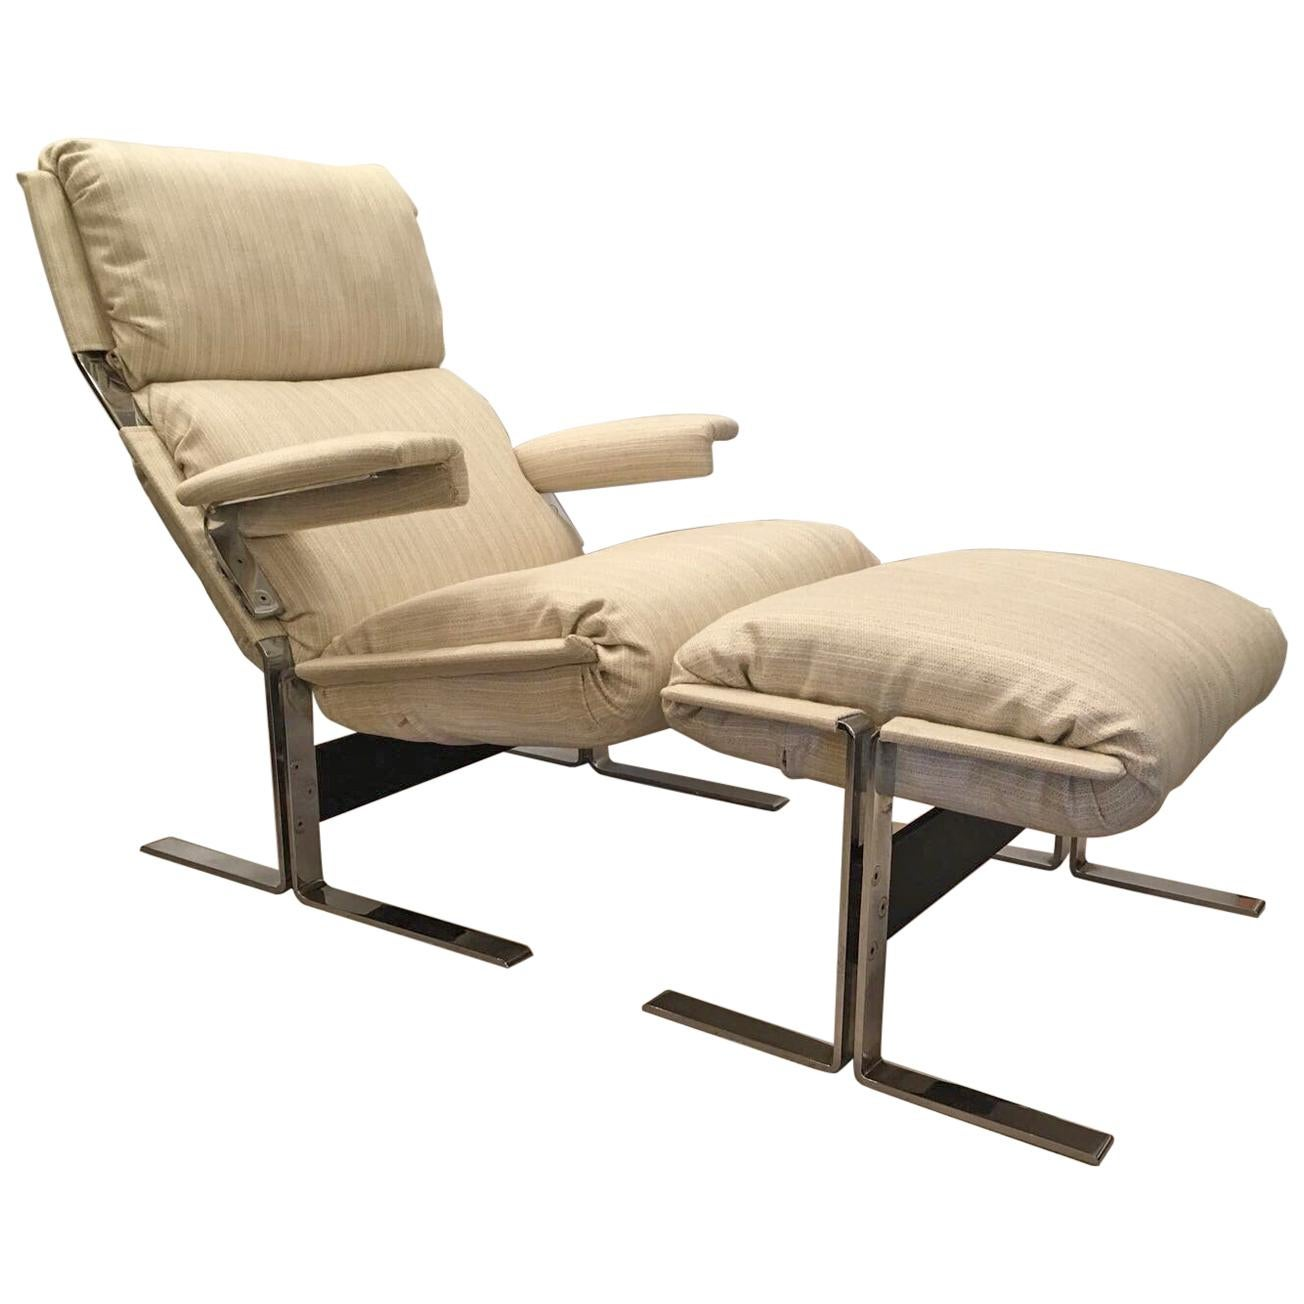 Richard Hersberger for the PACE Collection Modern Lounge Chair with Ottoman